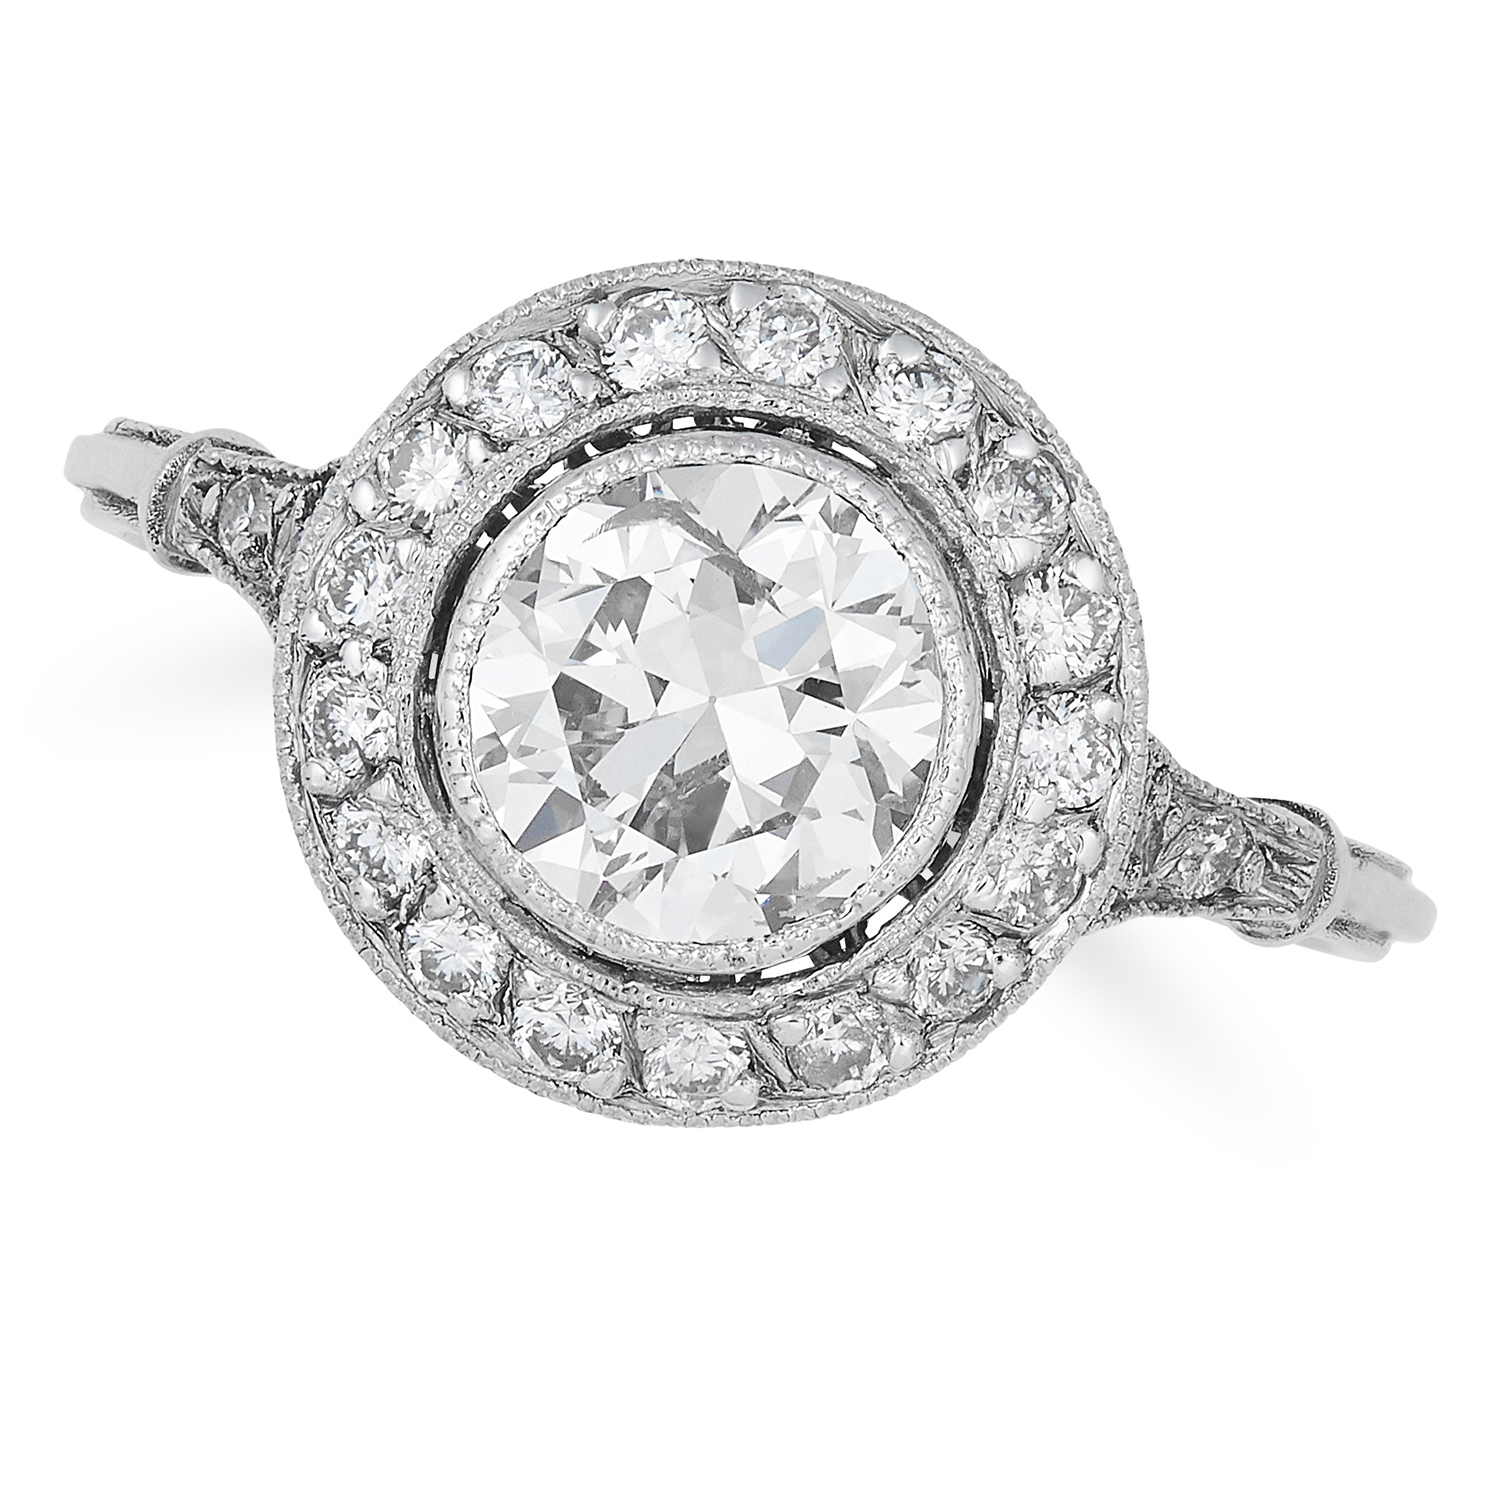 Los 47 - ANTIQUE DIAMOND DRESS RING set with a cluster of round cut diamonds totalling approximately 2.92